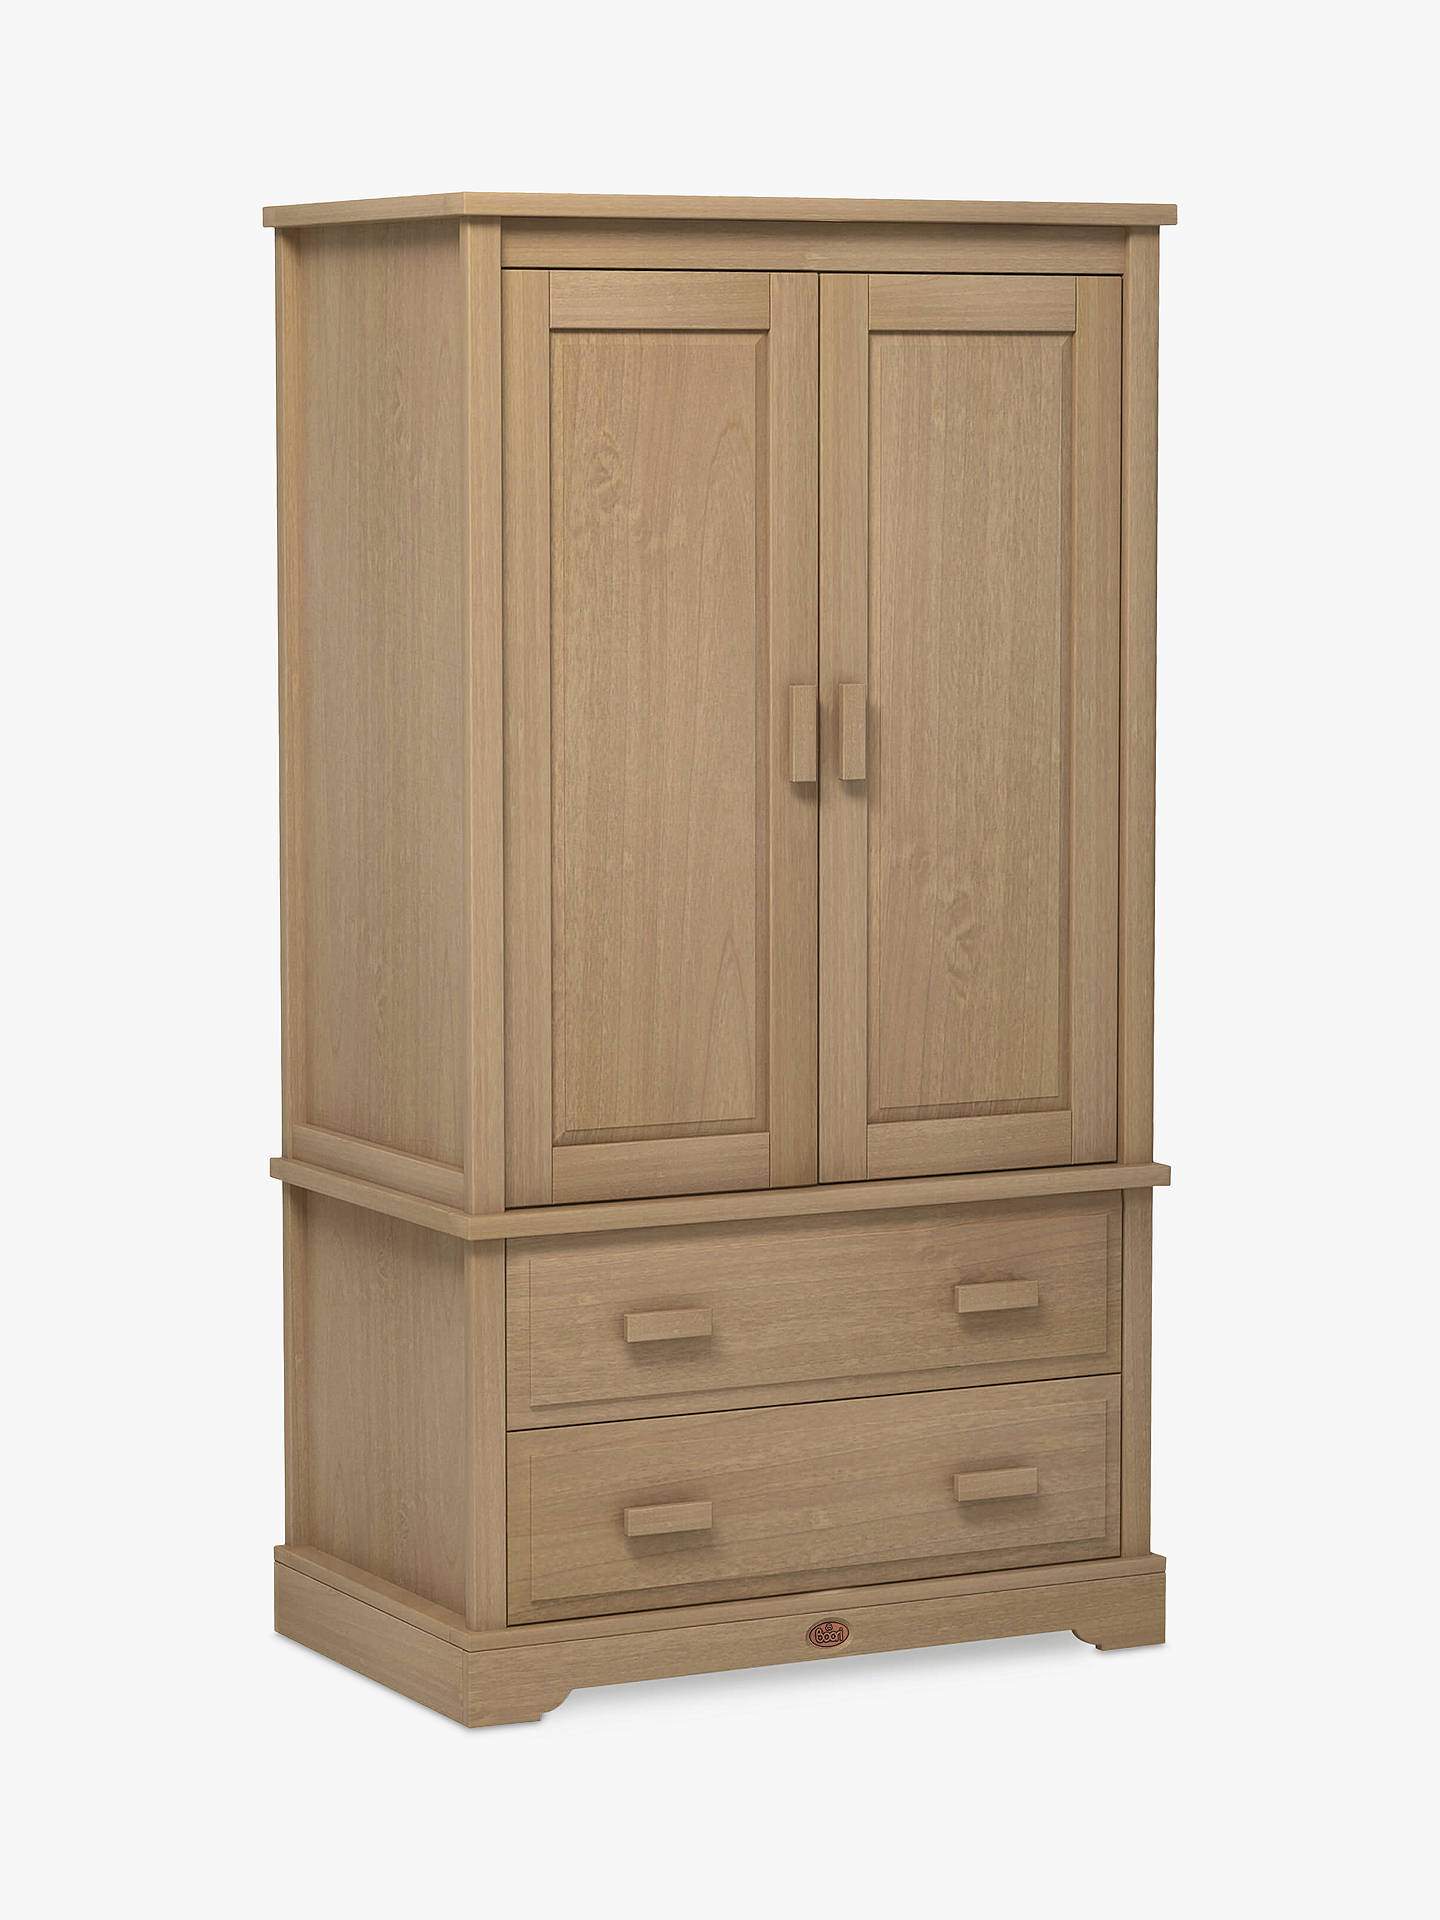 BuyBoori Universal Wardrobe, Almond Online at johnlewis.com